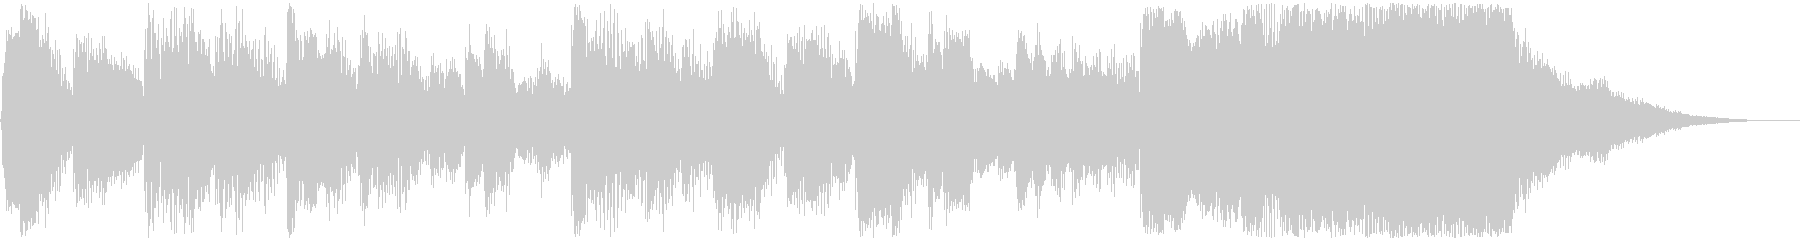 An orchestra but cute jingle's unreproduced waveform